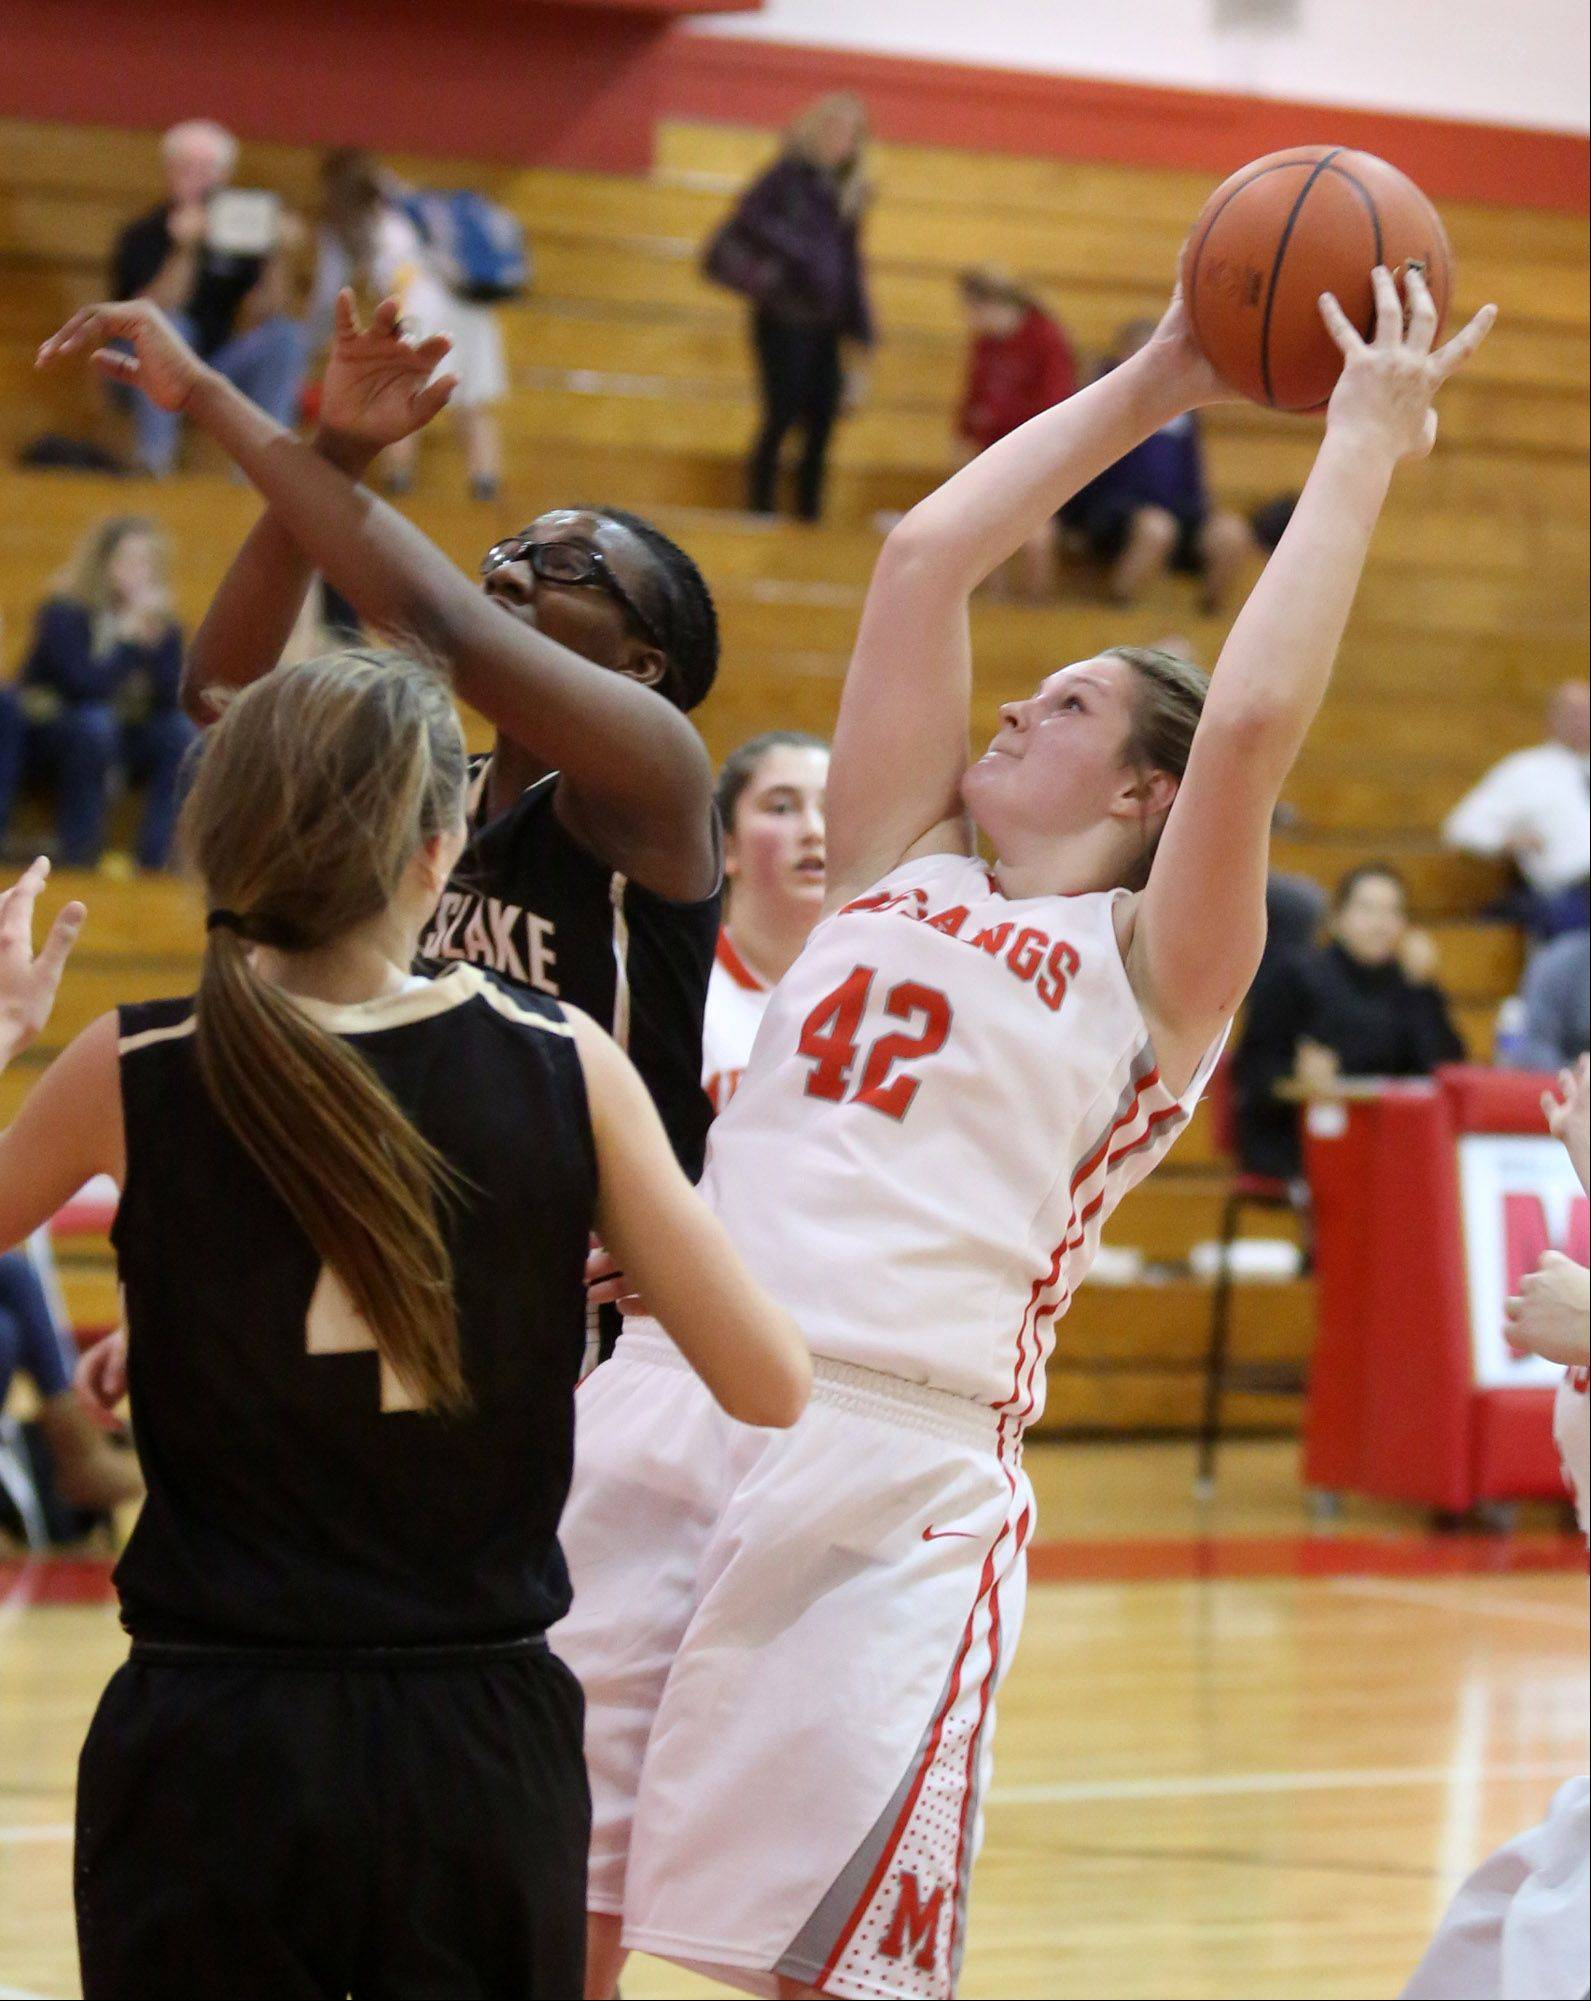 Mundelein's Taylor Lintner pulls in an offensive rebound and shoots against Grayslake North's Brittney Thibeaux, background, at Mundelein on Friday.